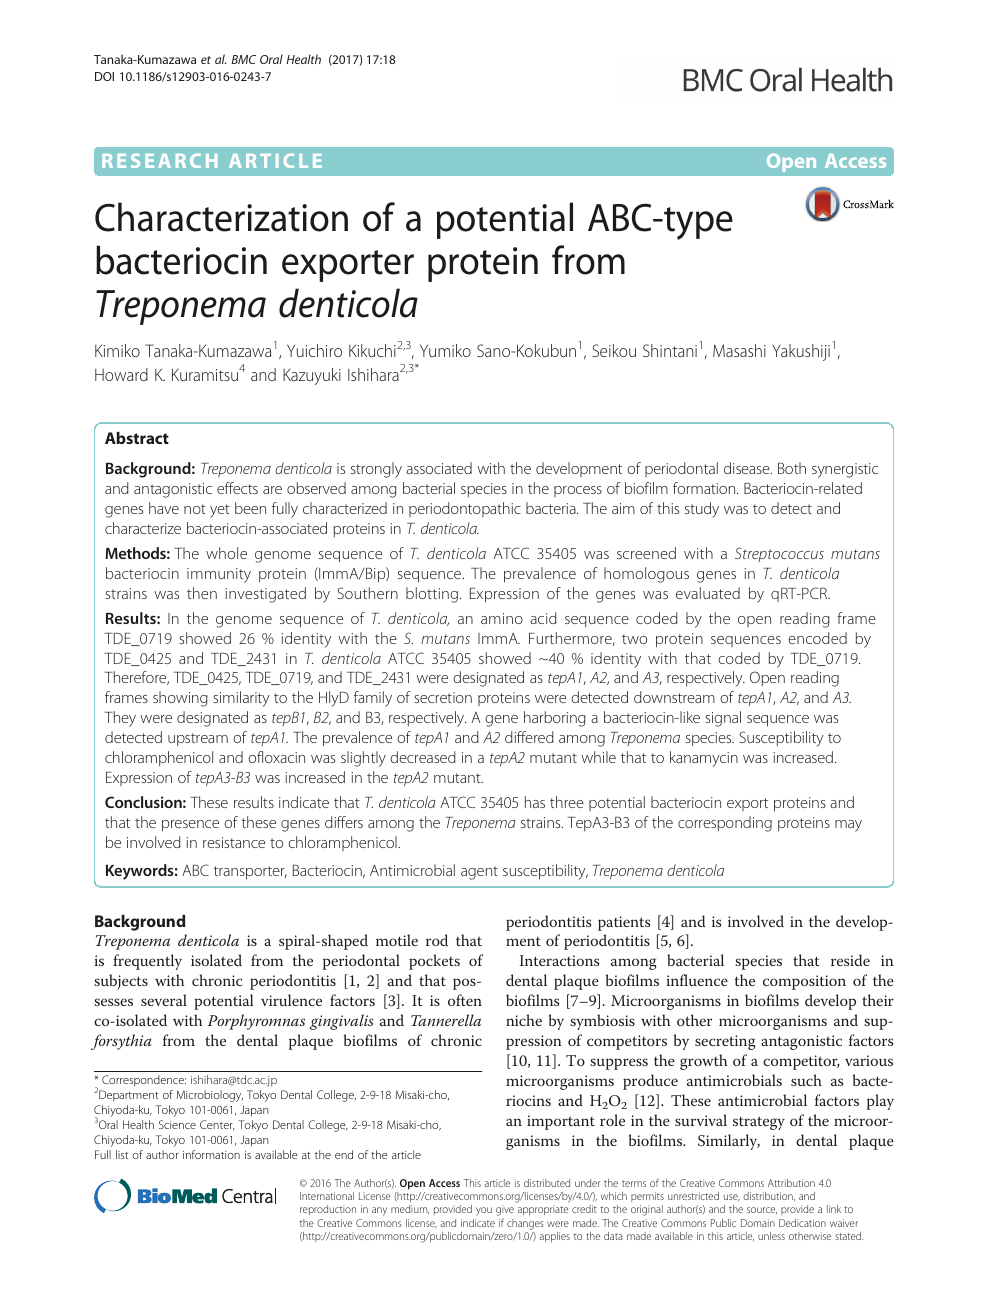 Characterization of a potential ABC-type bacteriocin